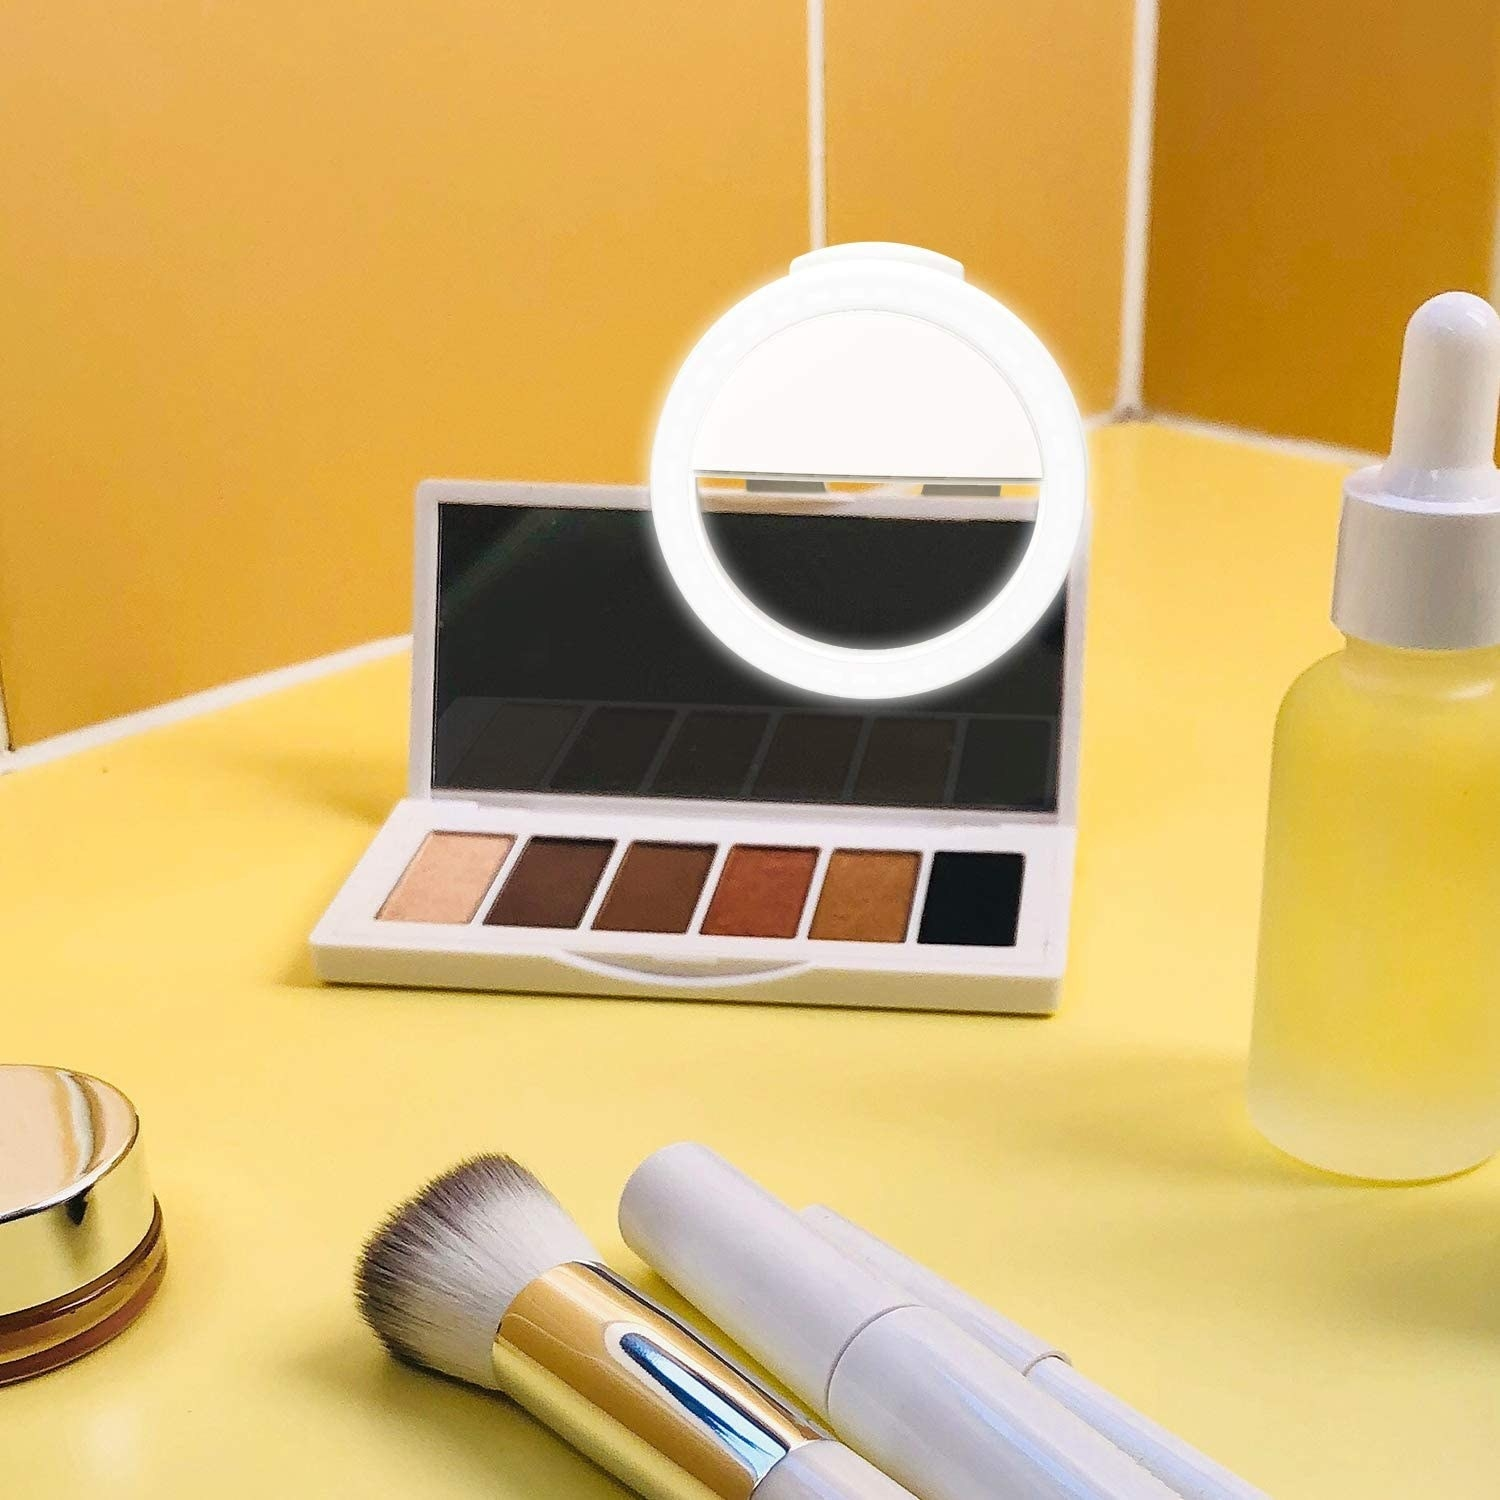 makeup palette with circular ring light clipped on